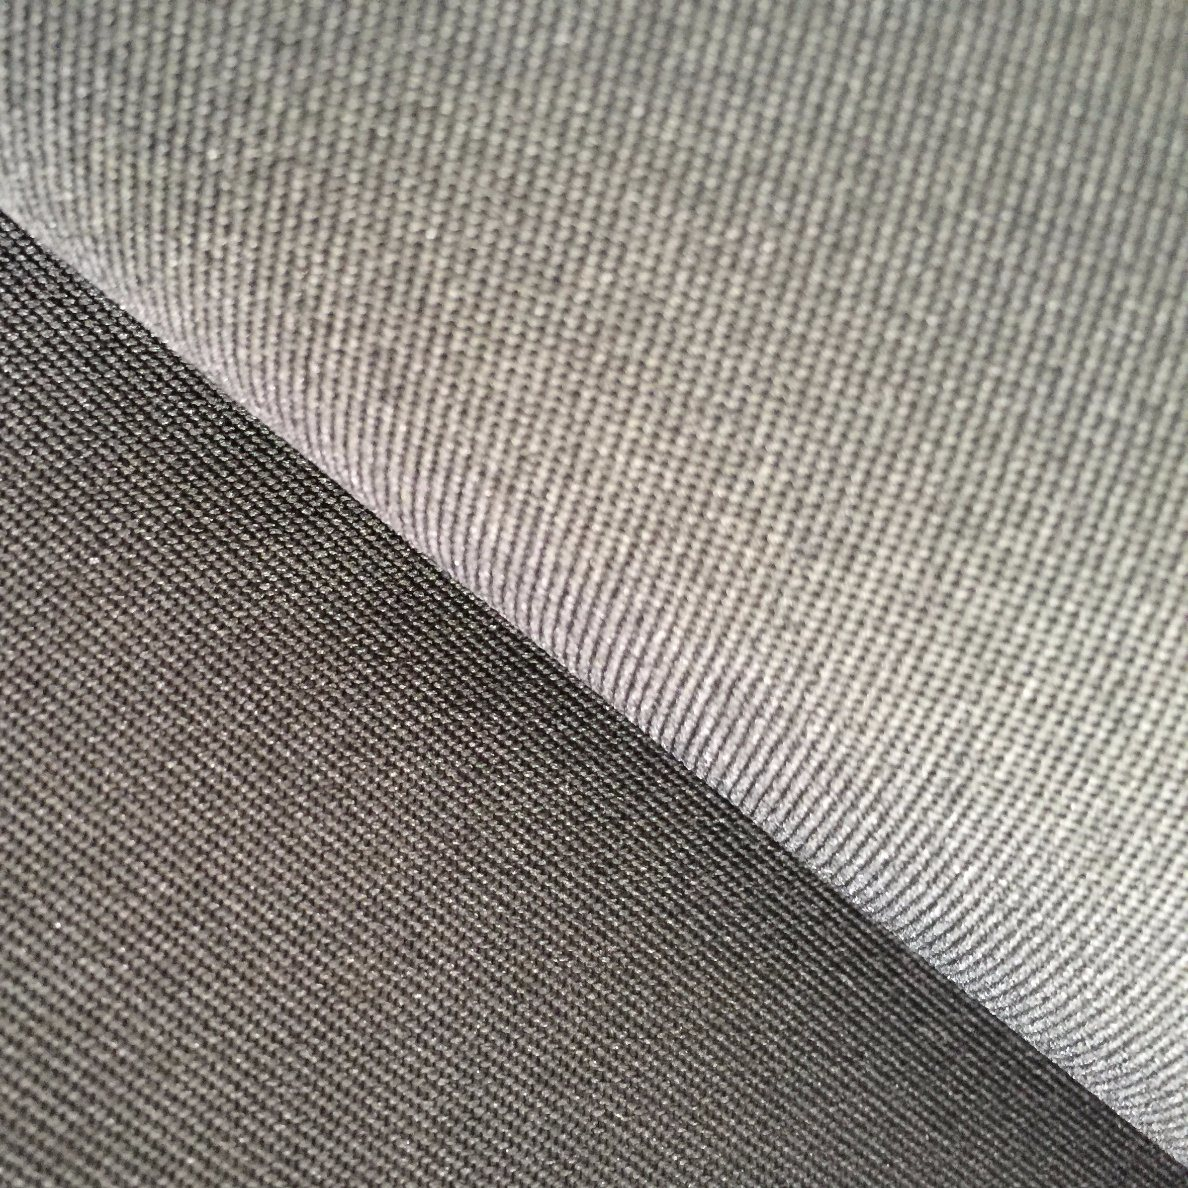 Polyester 300d*300d Gaberdine 200GSM 2/1twill Uniform Fabric